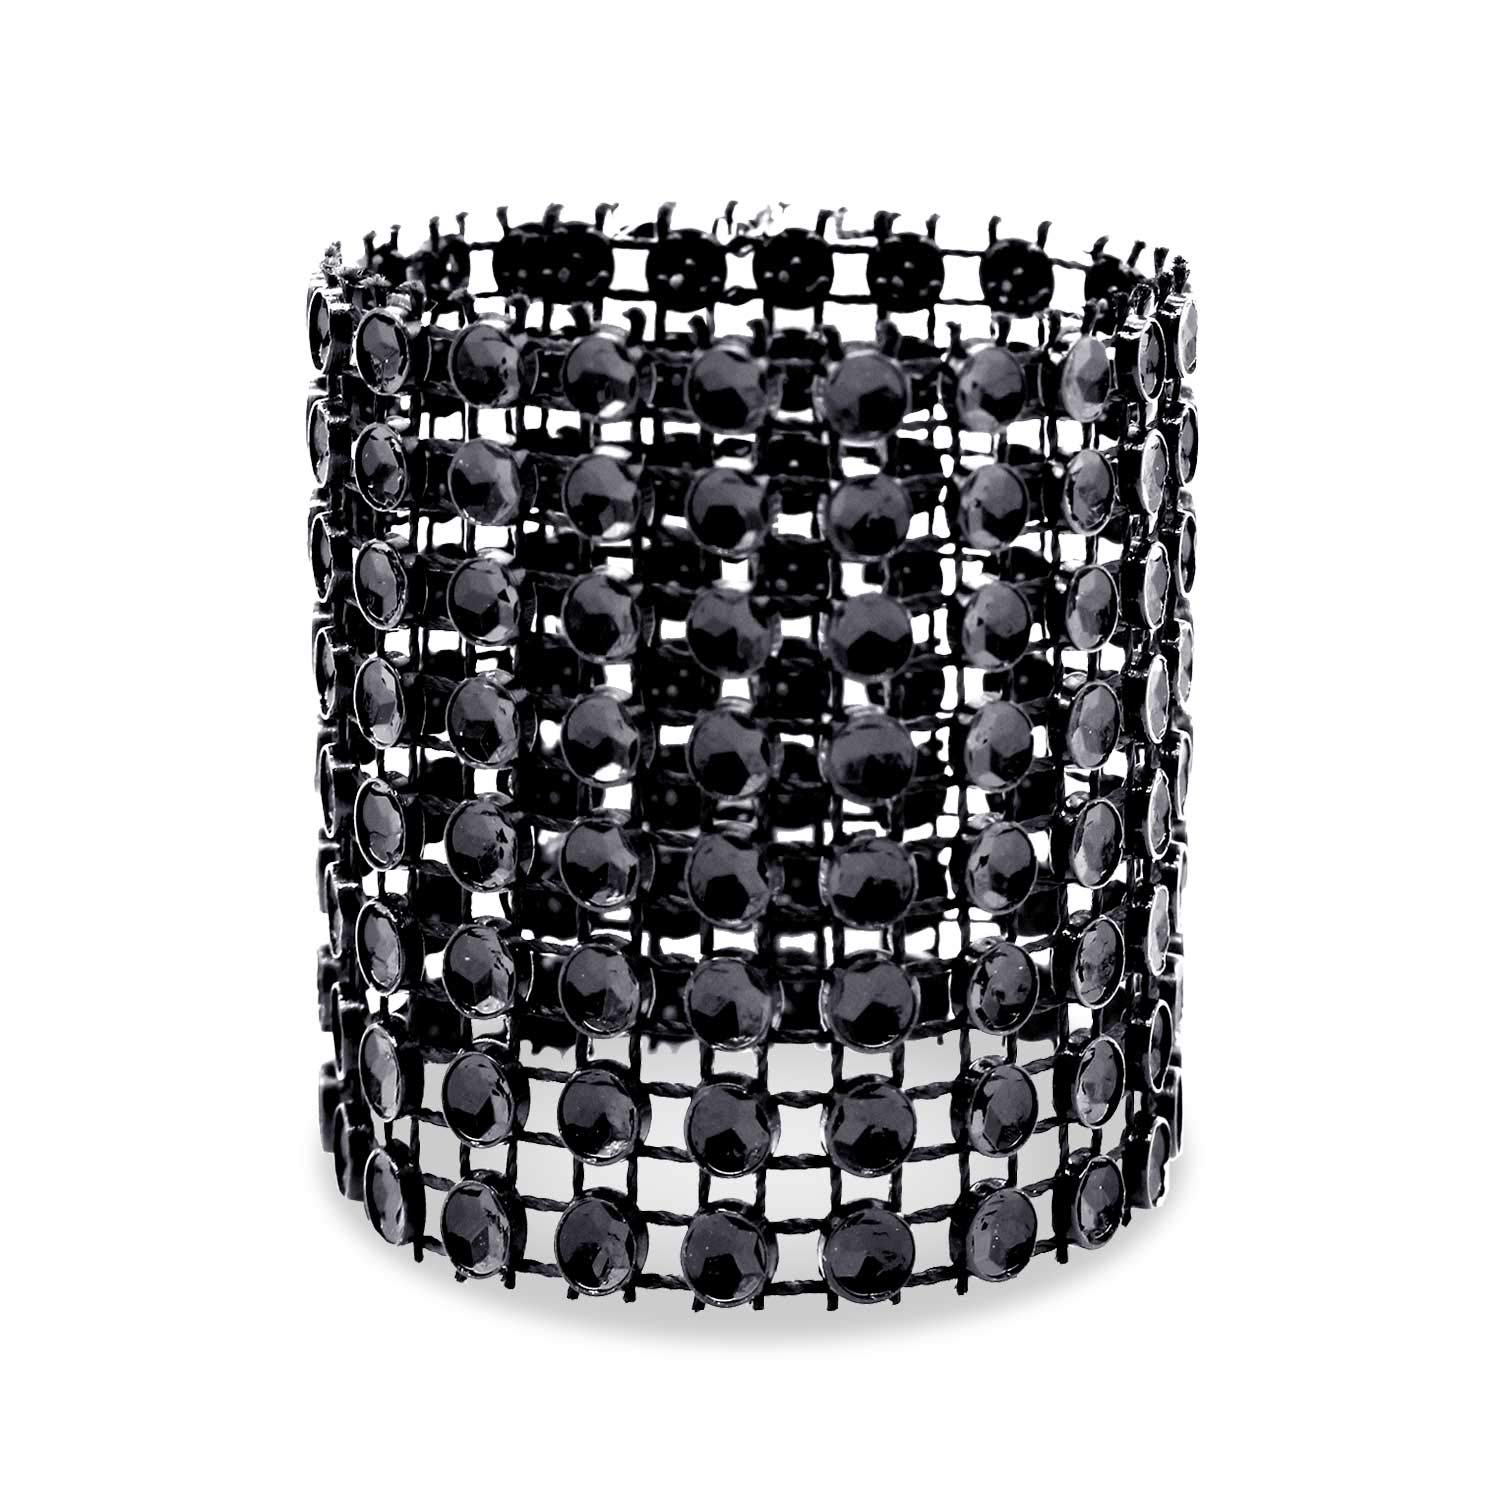 120, Black Family Gatherings Dinner or Holiday Parties KPOSIYA Napkin Rings Wedding Receptions Pack of 120 Rhinestone Napkin Rings Diamond Adornment for Place Settings